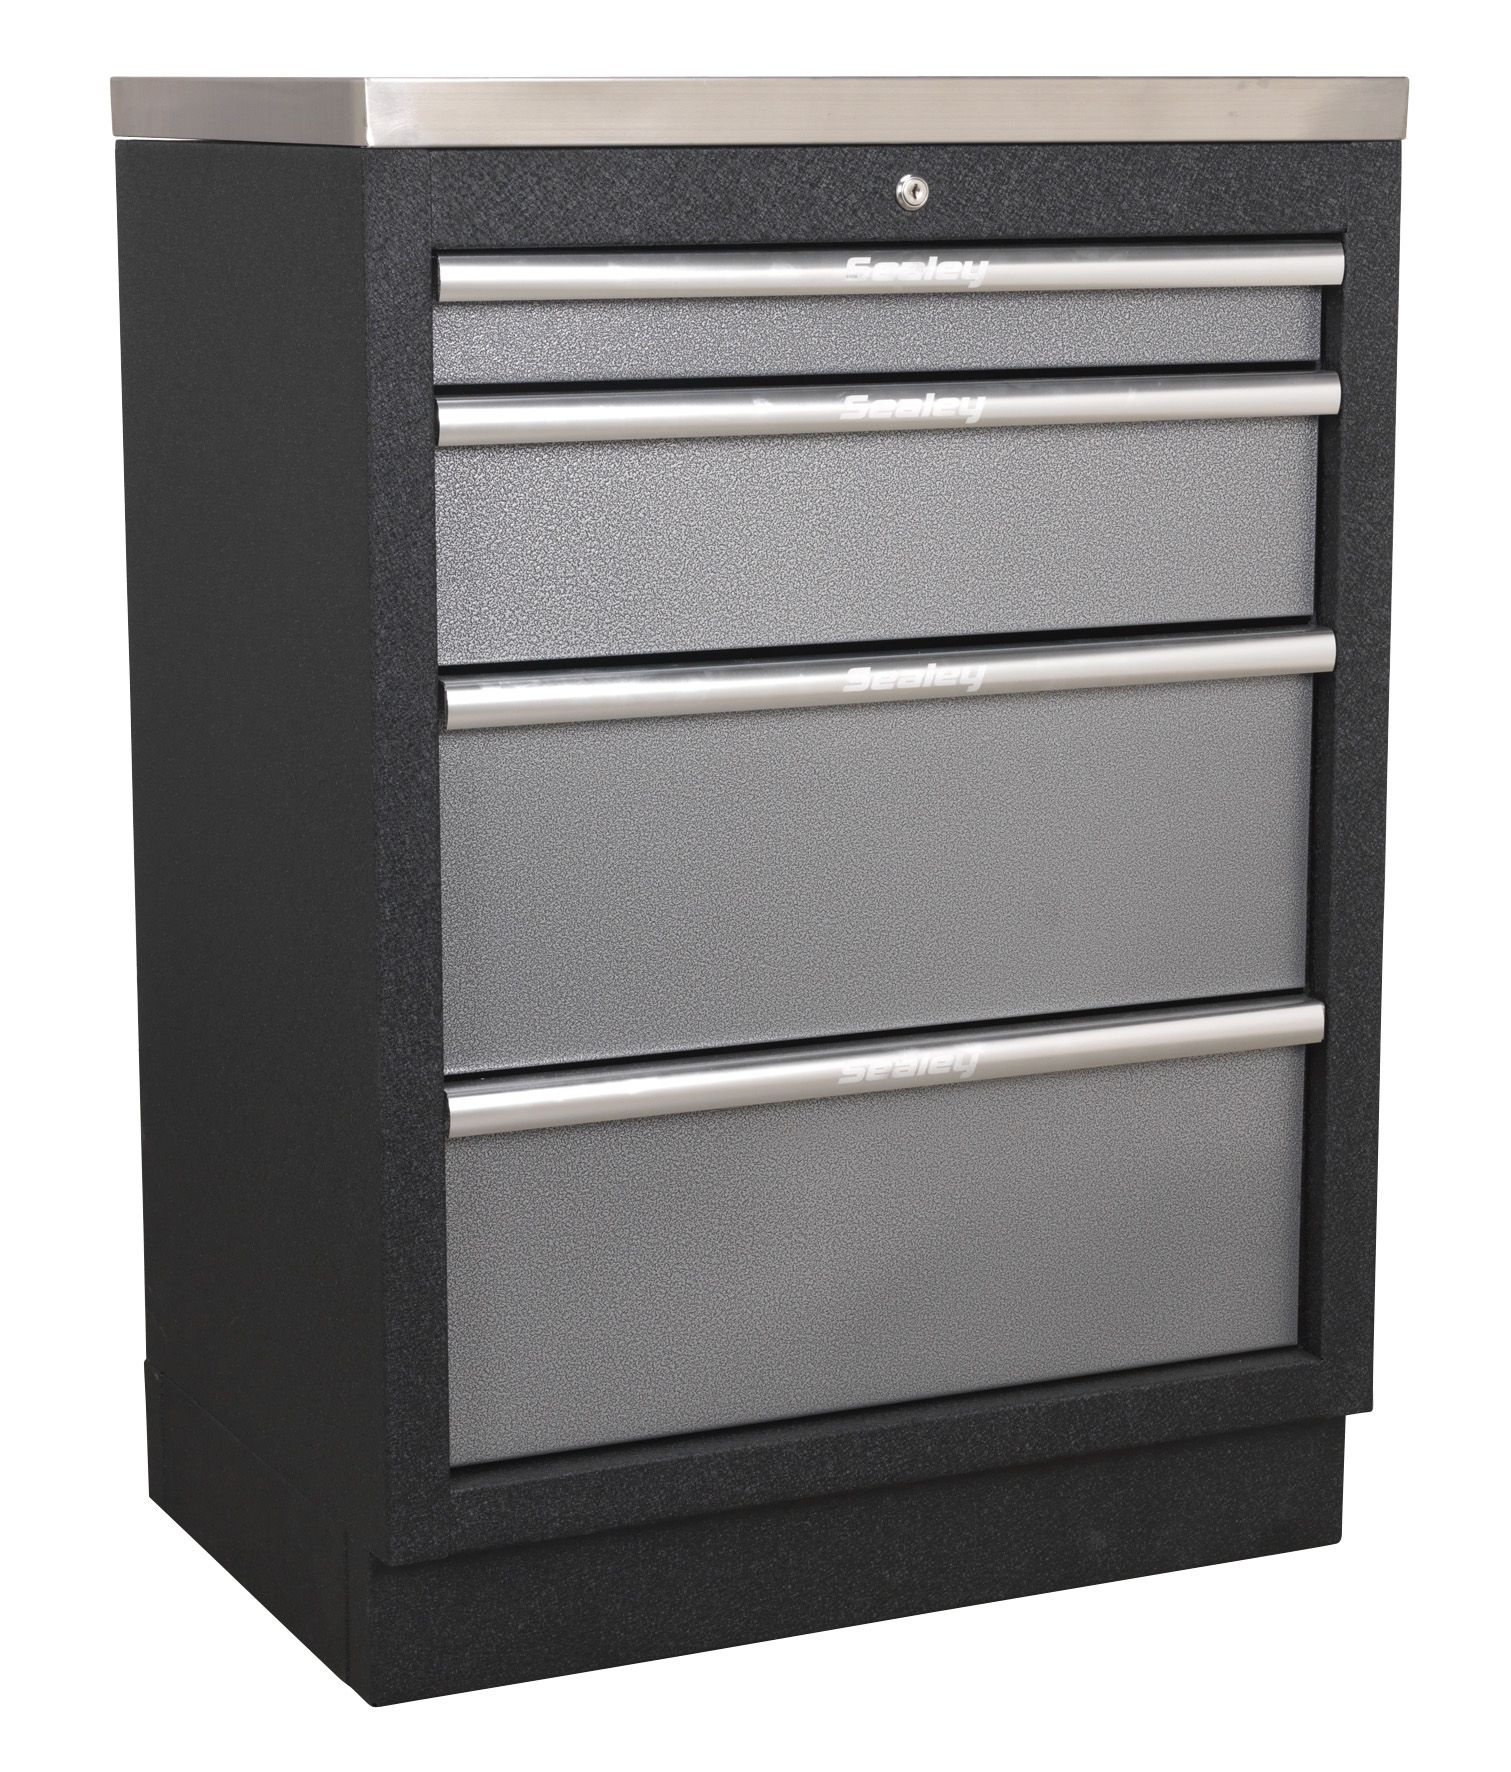 Sealey Superline Pro Modular 4 Drawer Cabinet 680mm